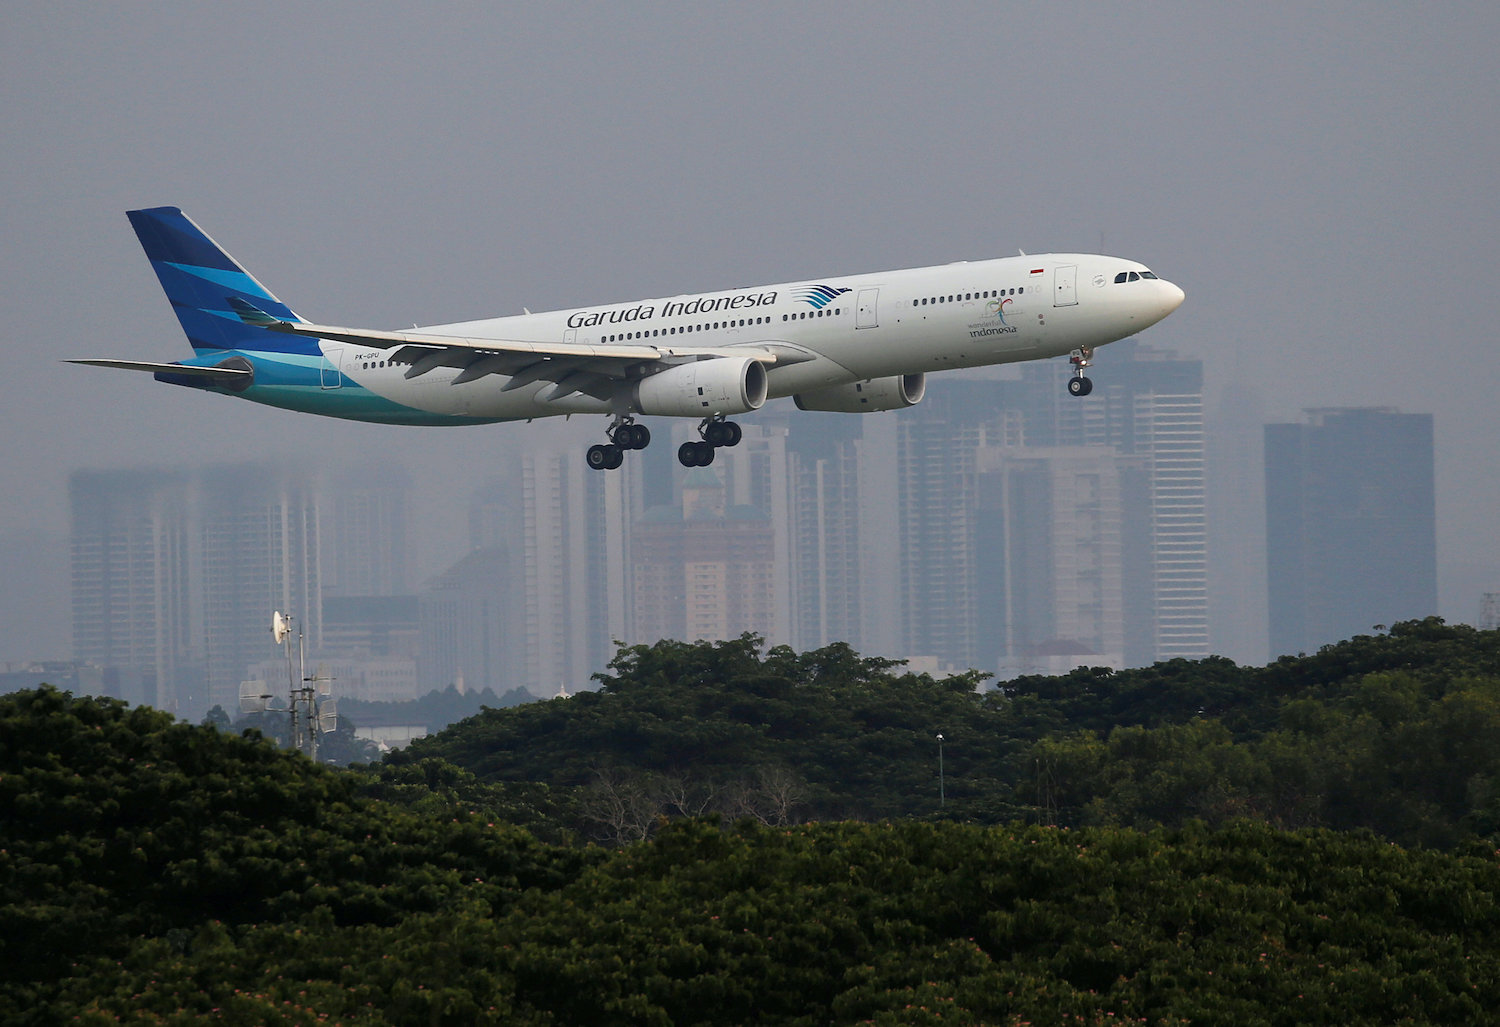 A Garuda Indonesia Airbus A330 prepares to land at Soekarno Hatta International Airport in Jakarta. (Reuters File Photo)